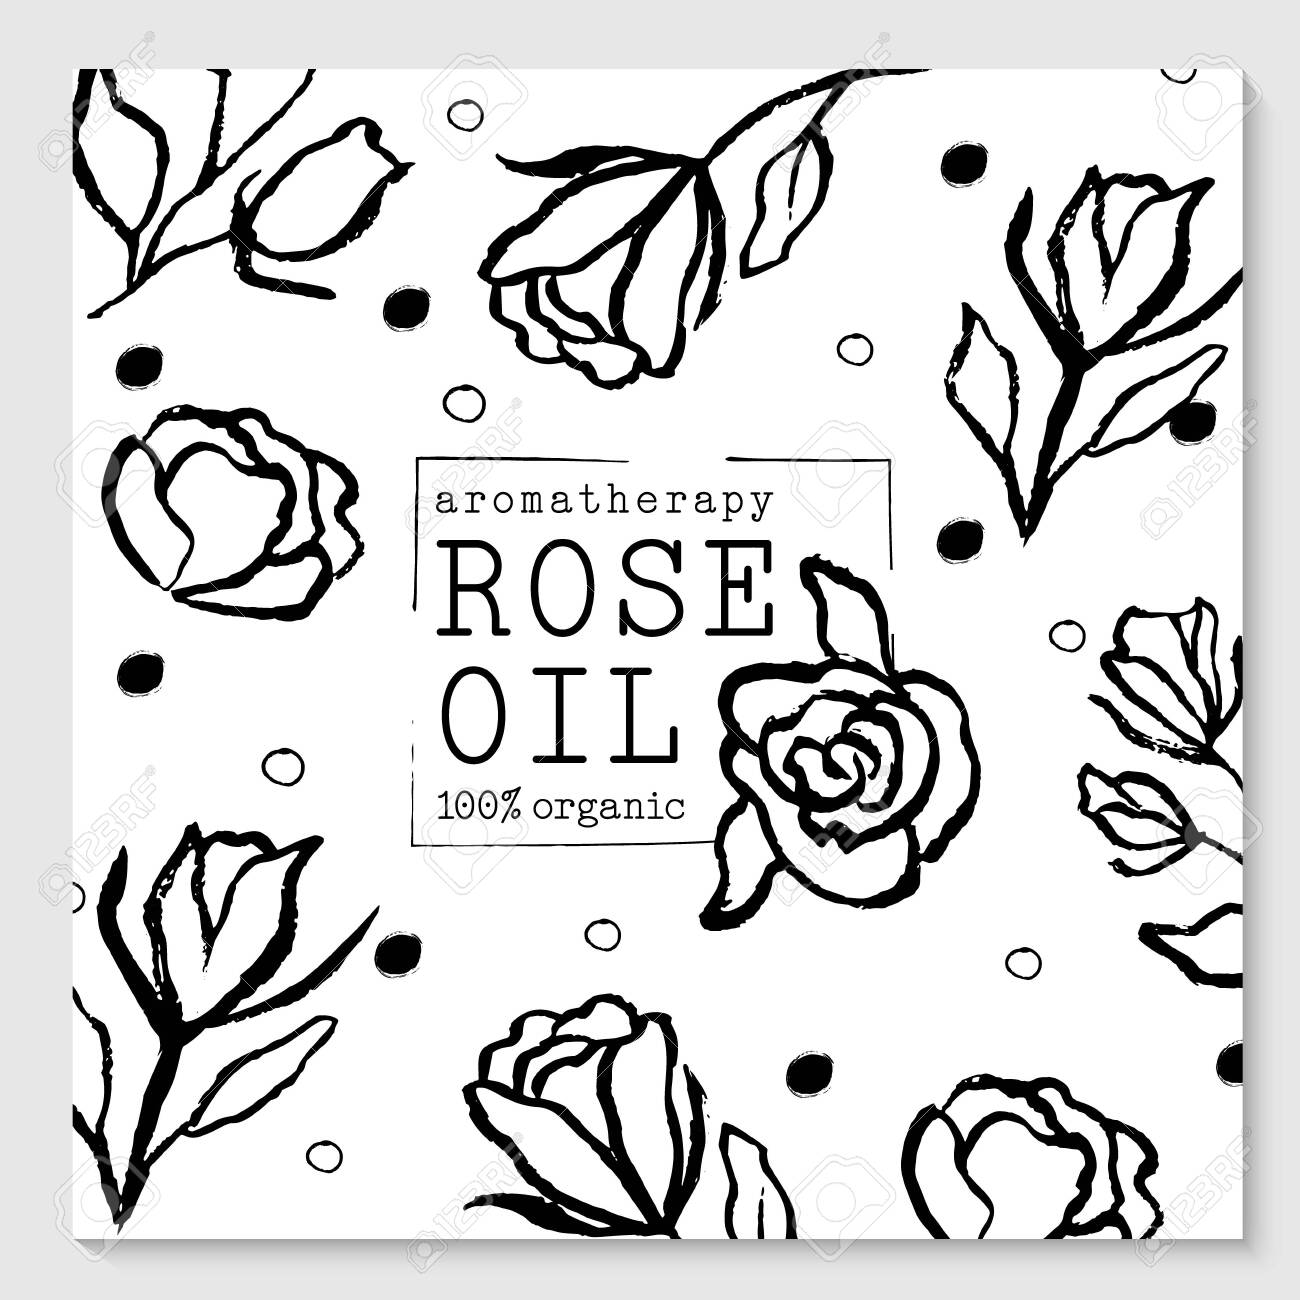 Vector packaging design elements and templates for rose oil labels and bottles - 147735862